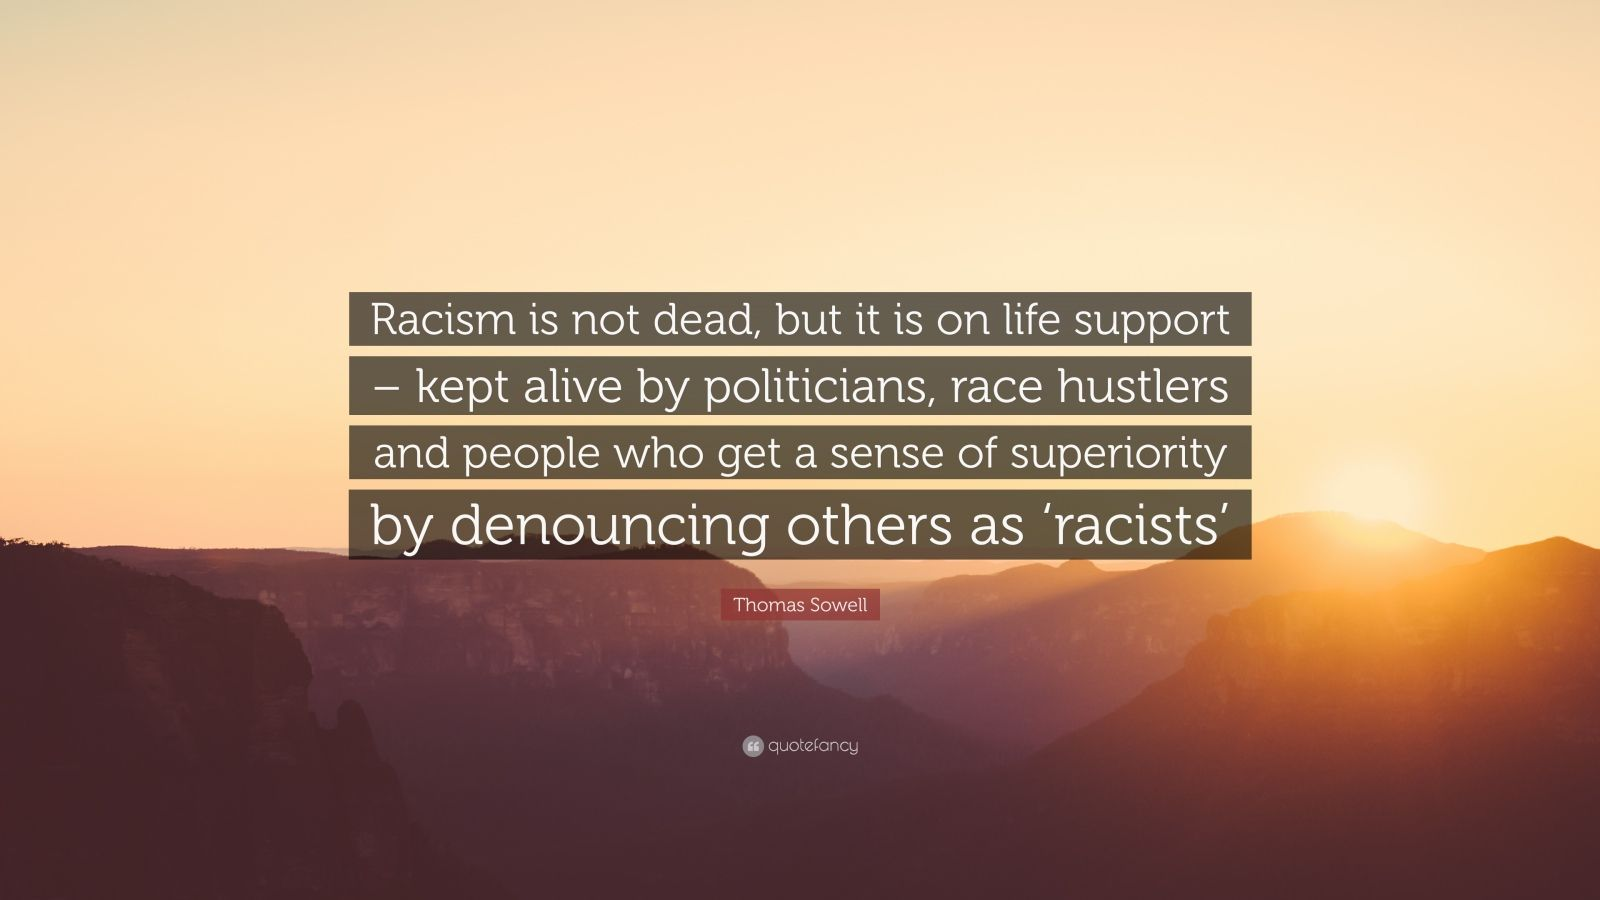 Steve Jobs Famous Quotes Wallpaper Thomas Sowell Quote Racism Is Not Dead But It Is On